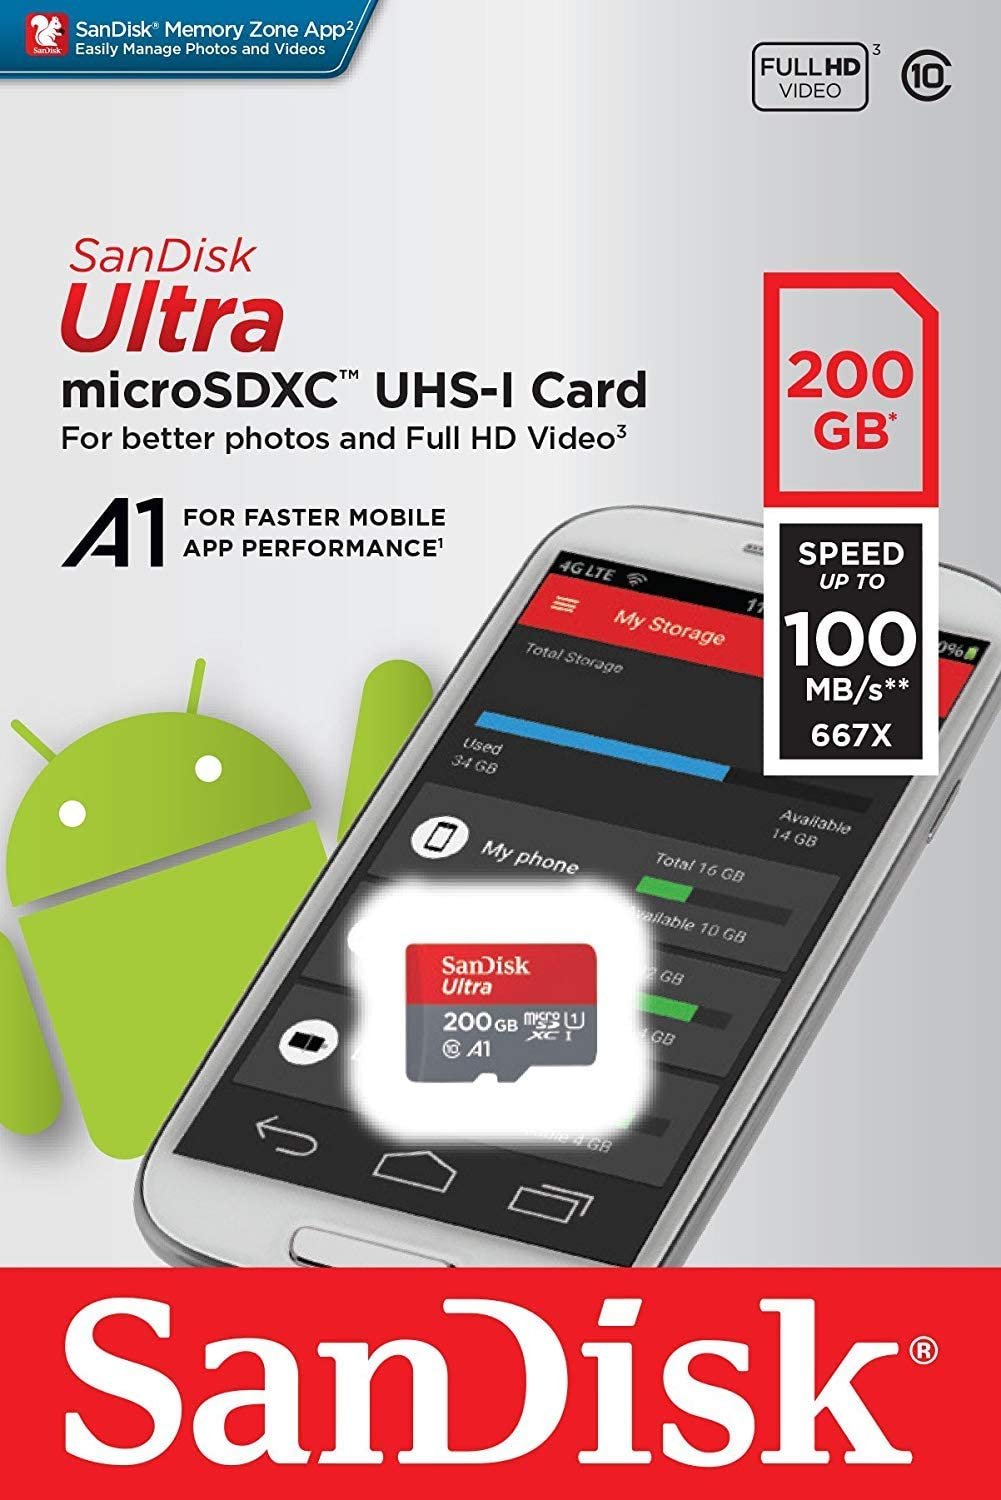 SanDisk Ultra 200GB MicroSDXC Verified for Gionee Marathon M5 Plus by SanFlash 100MBs A1 U1 C10 Works with SanDisk